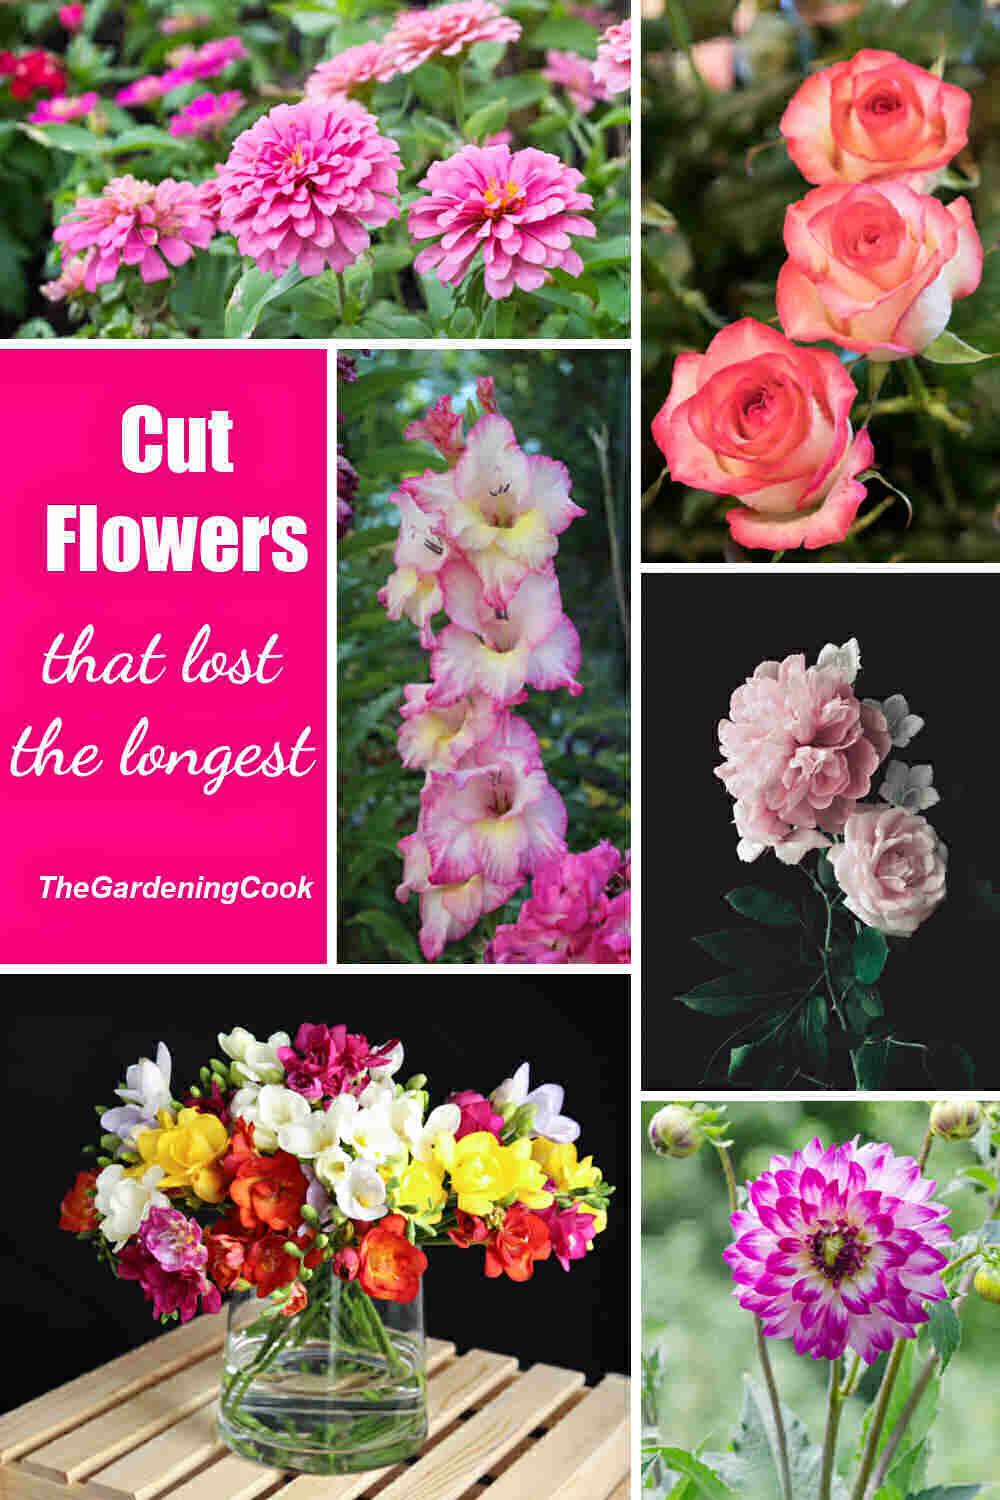 Collage with peonies, roses, zinnia, freesia, gladiola and zinnias and words reading Cut Flowers that last the longest.